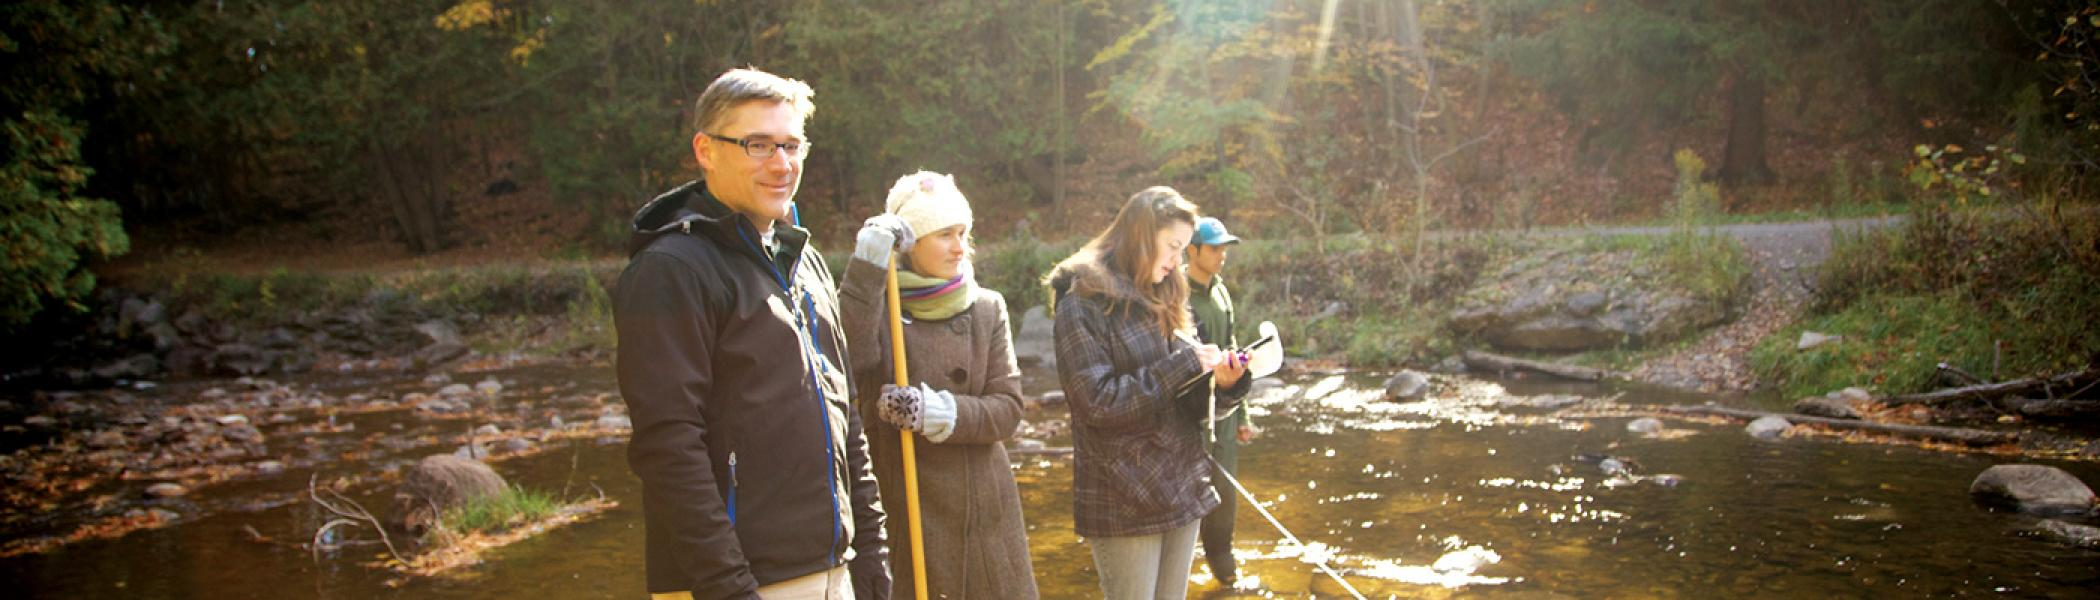 Professor and 3 students standing in a river on a sunny morning gathering samples